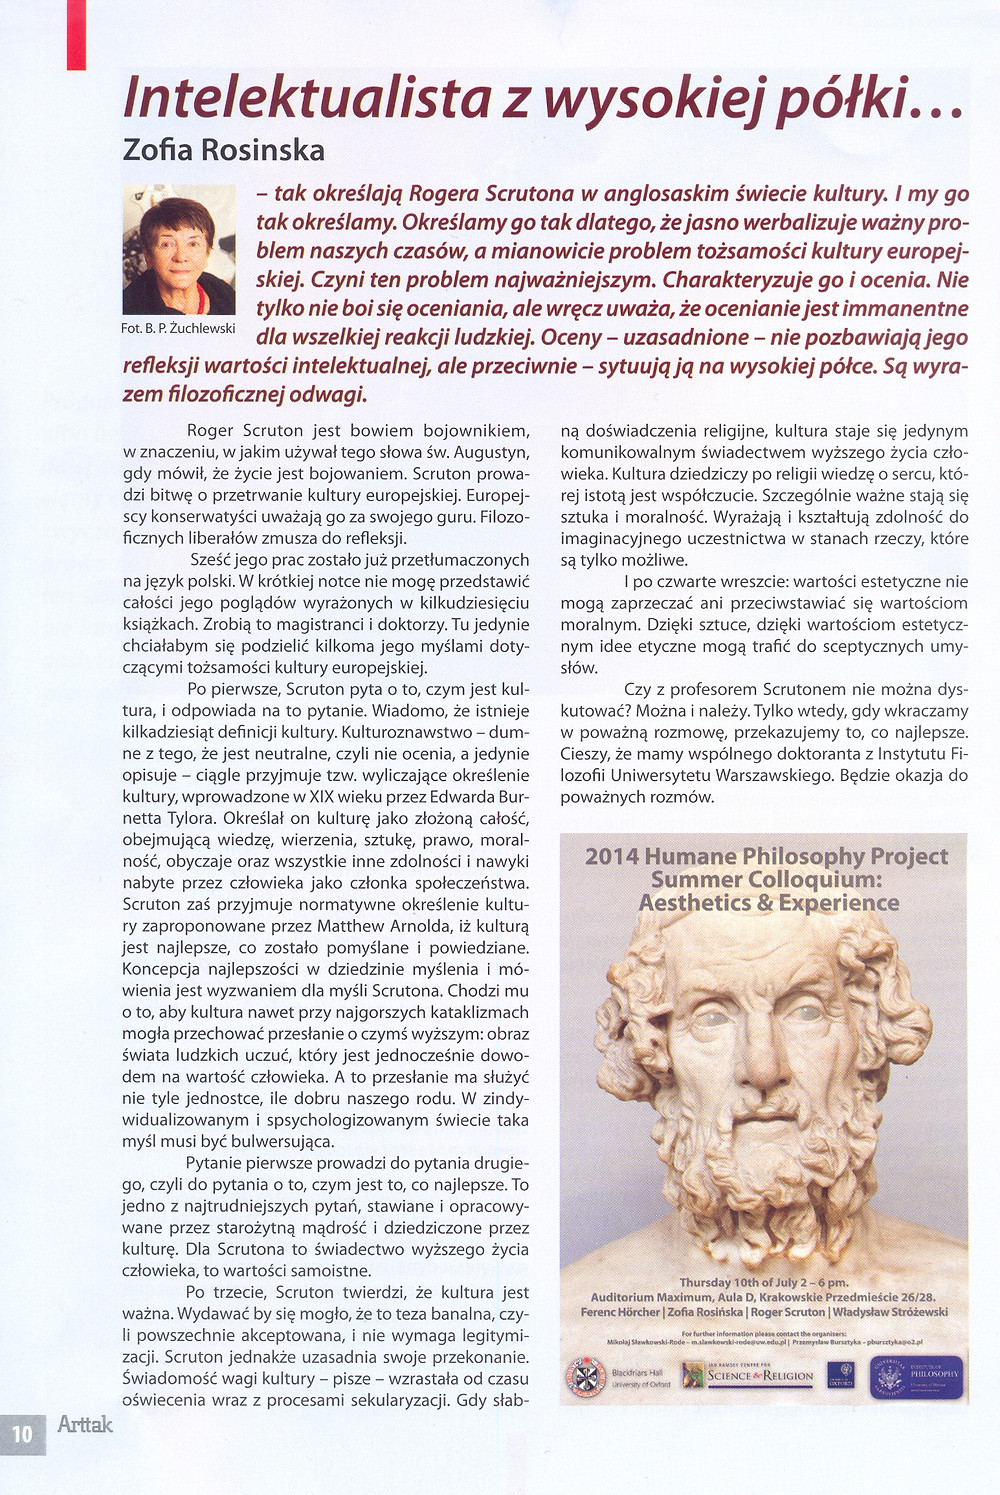 A short article by Zofia Rosinska, professor of philosophy involved with the Humane Philosophy Project at Warsaw University.